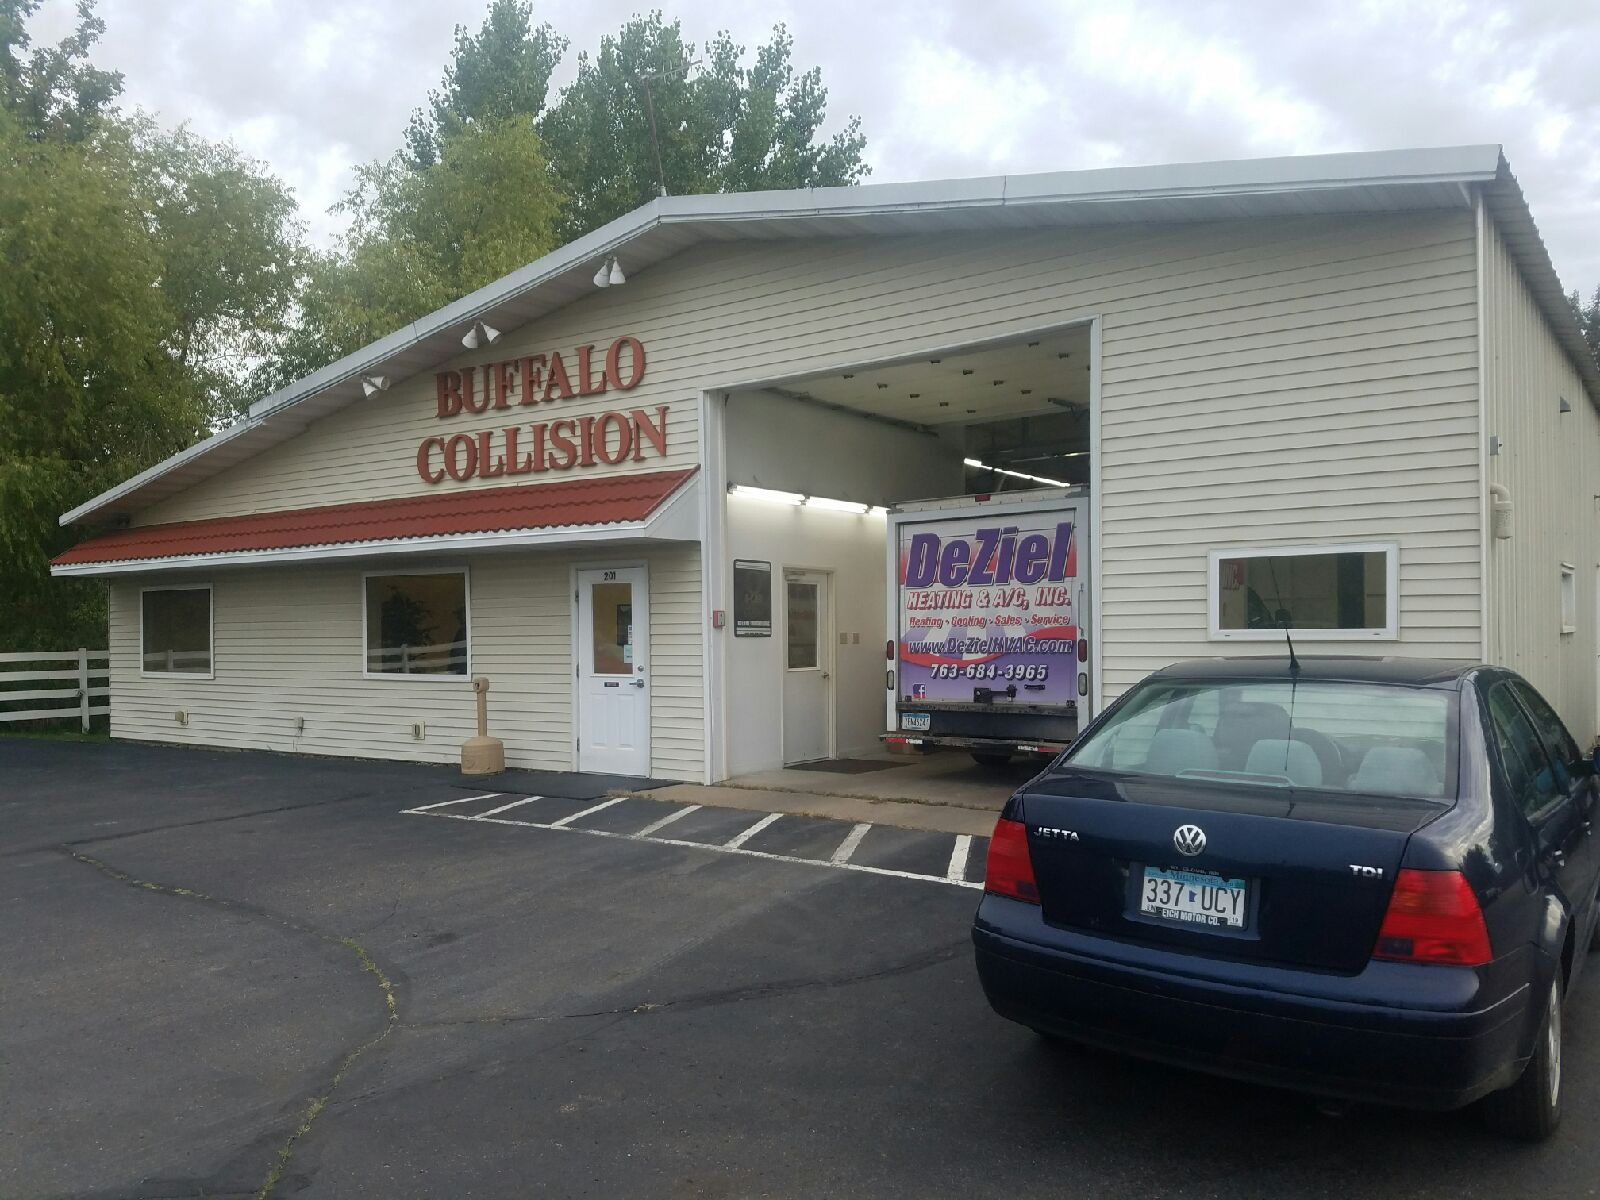 Buffalo Collision Repair